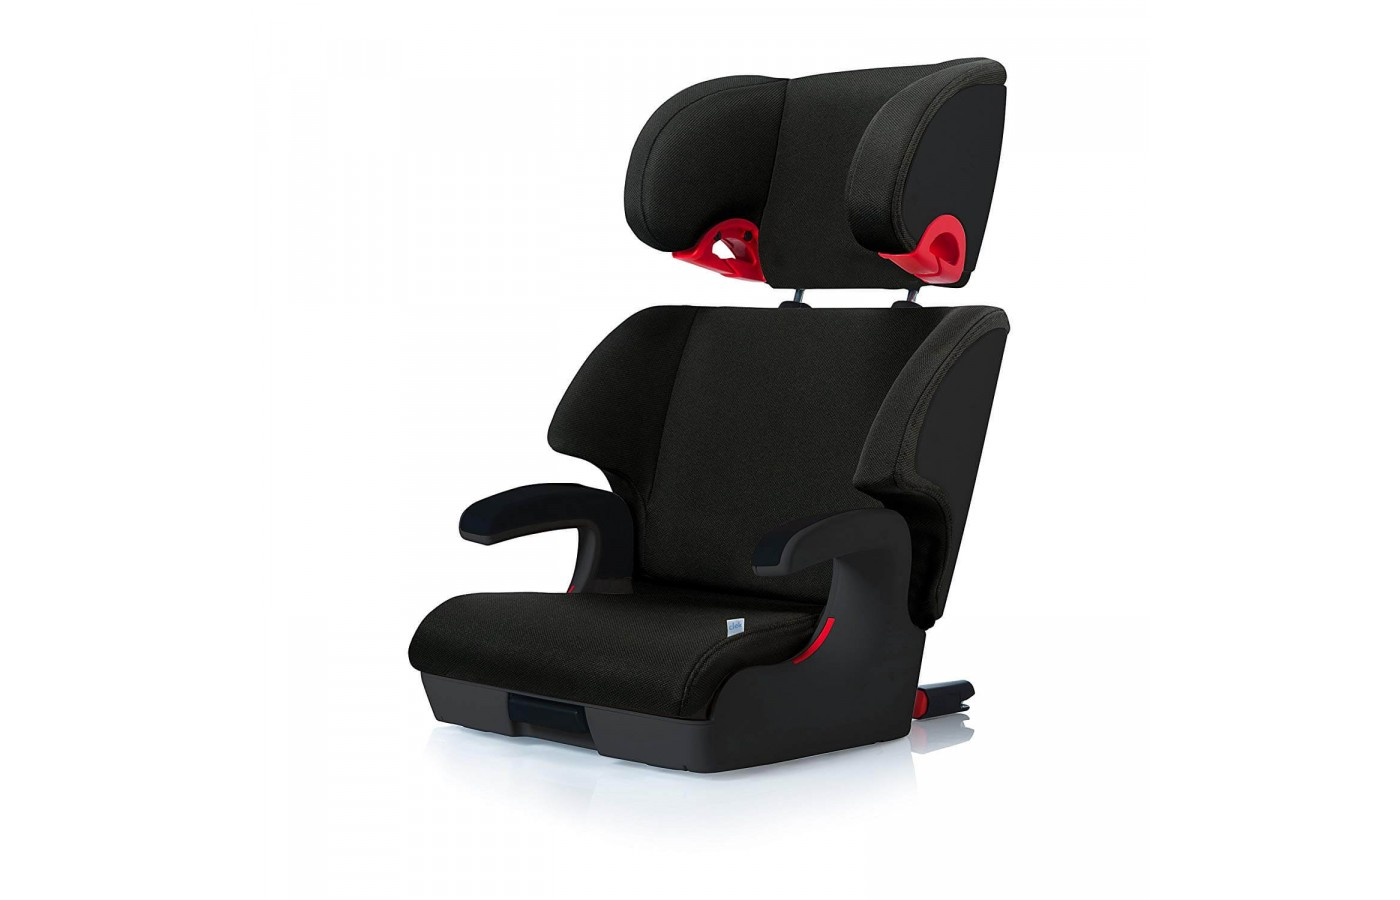 The car seat can be used in high-back and backless modes